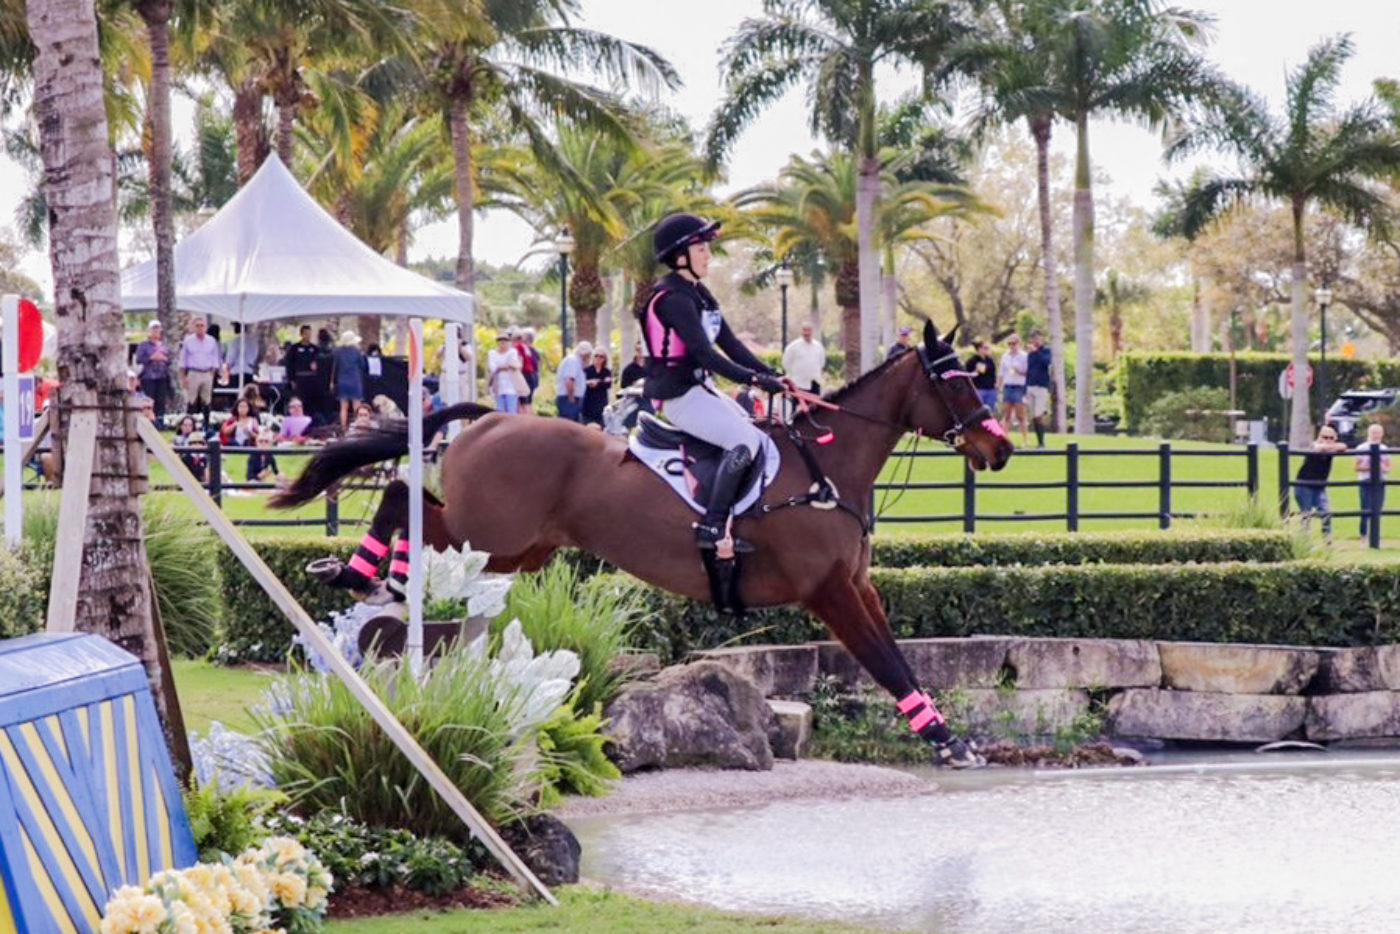 Charlotte Collier and Clifford M had the fastest round of the day. Samantha Clark Photo.